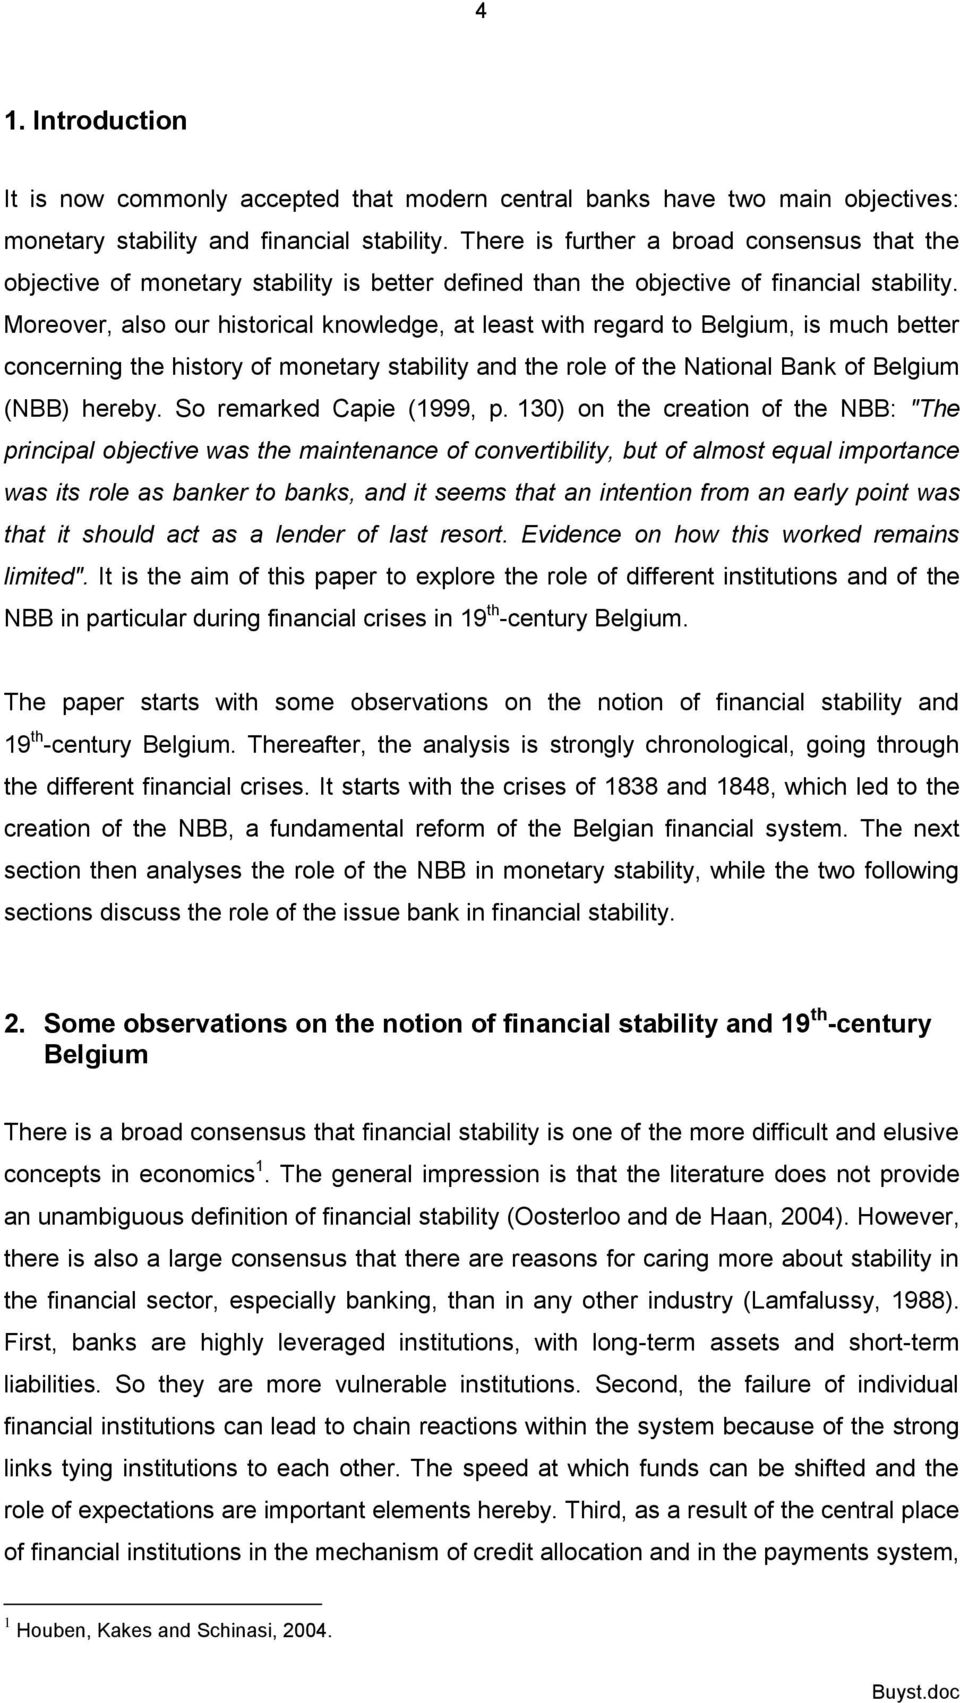 Moreover, also our historical knowledge, at least with regard to Belgium, is much better concerning the history of monetary stability and the role of the National Bank of Belgium (NBB) hereby.